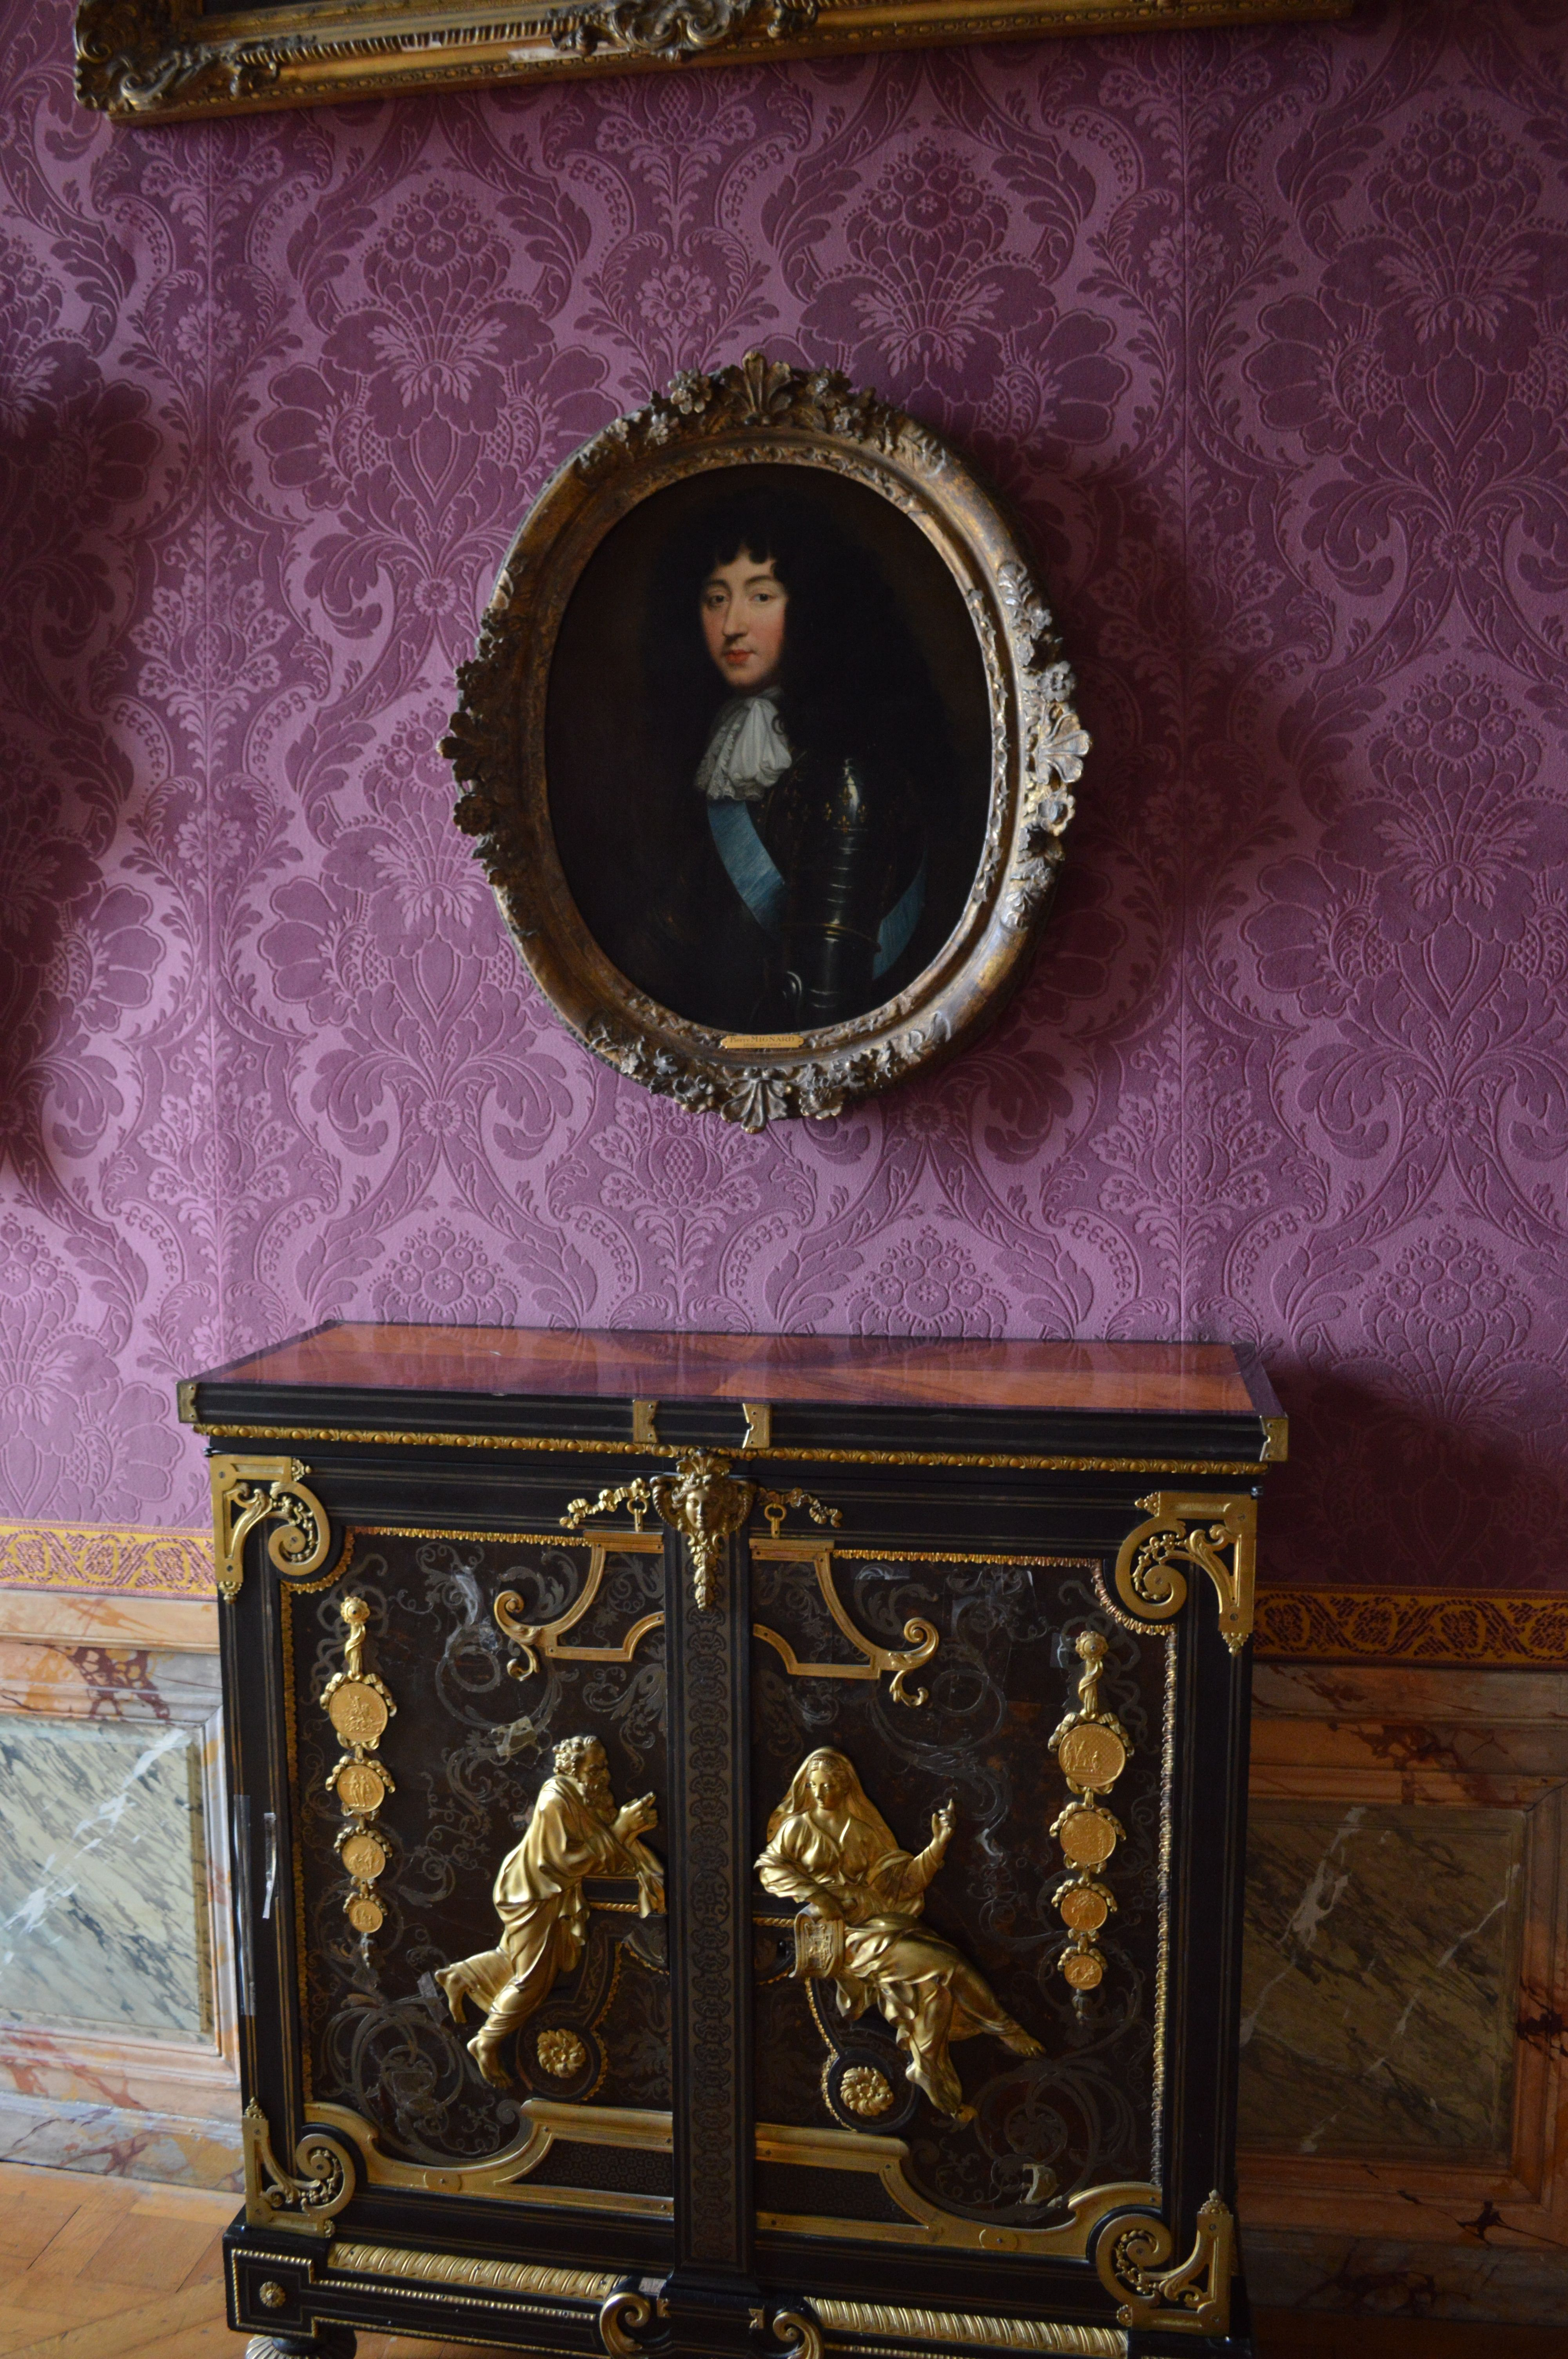 Louis The 14th Furniture Furniture In The Palace Of Versailles During The Reign Of